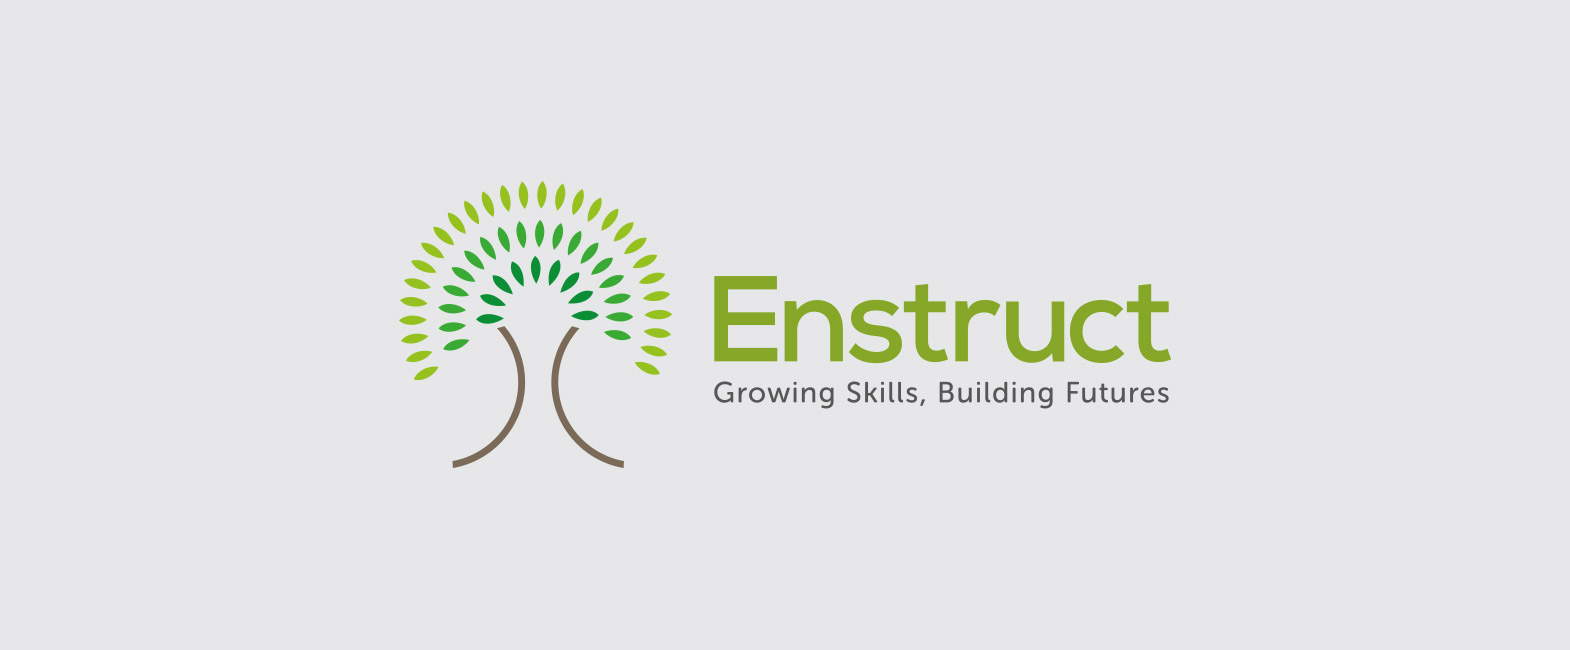 enstruct logo design